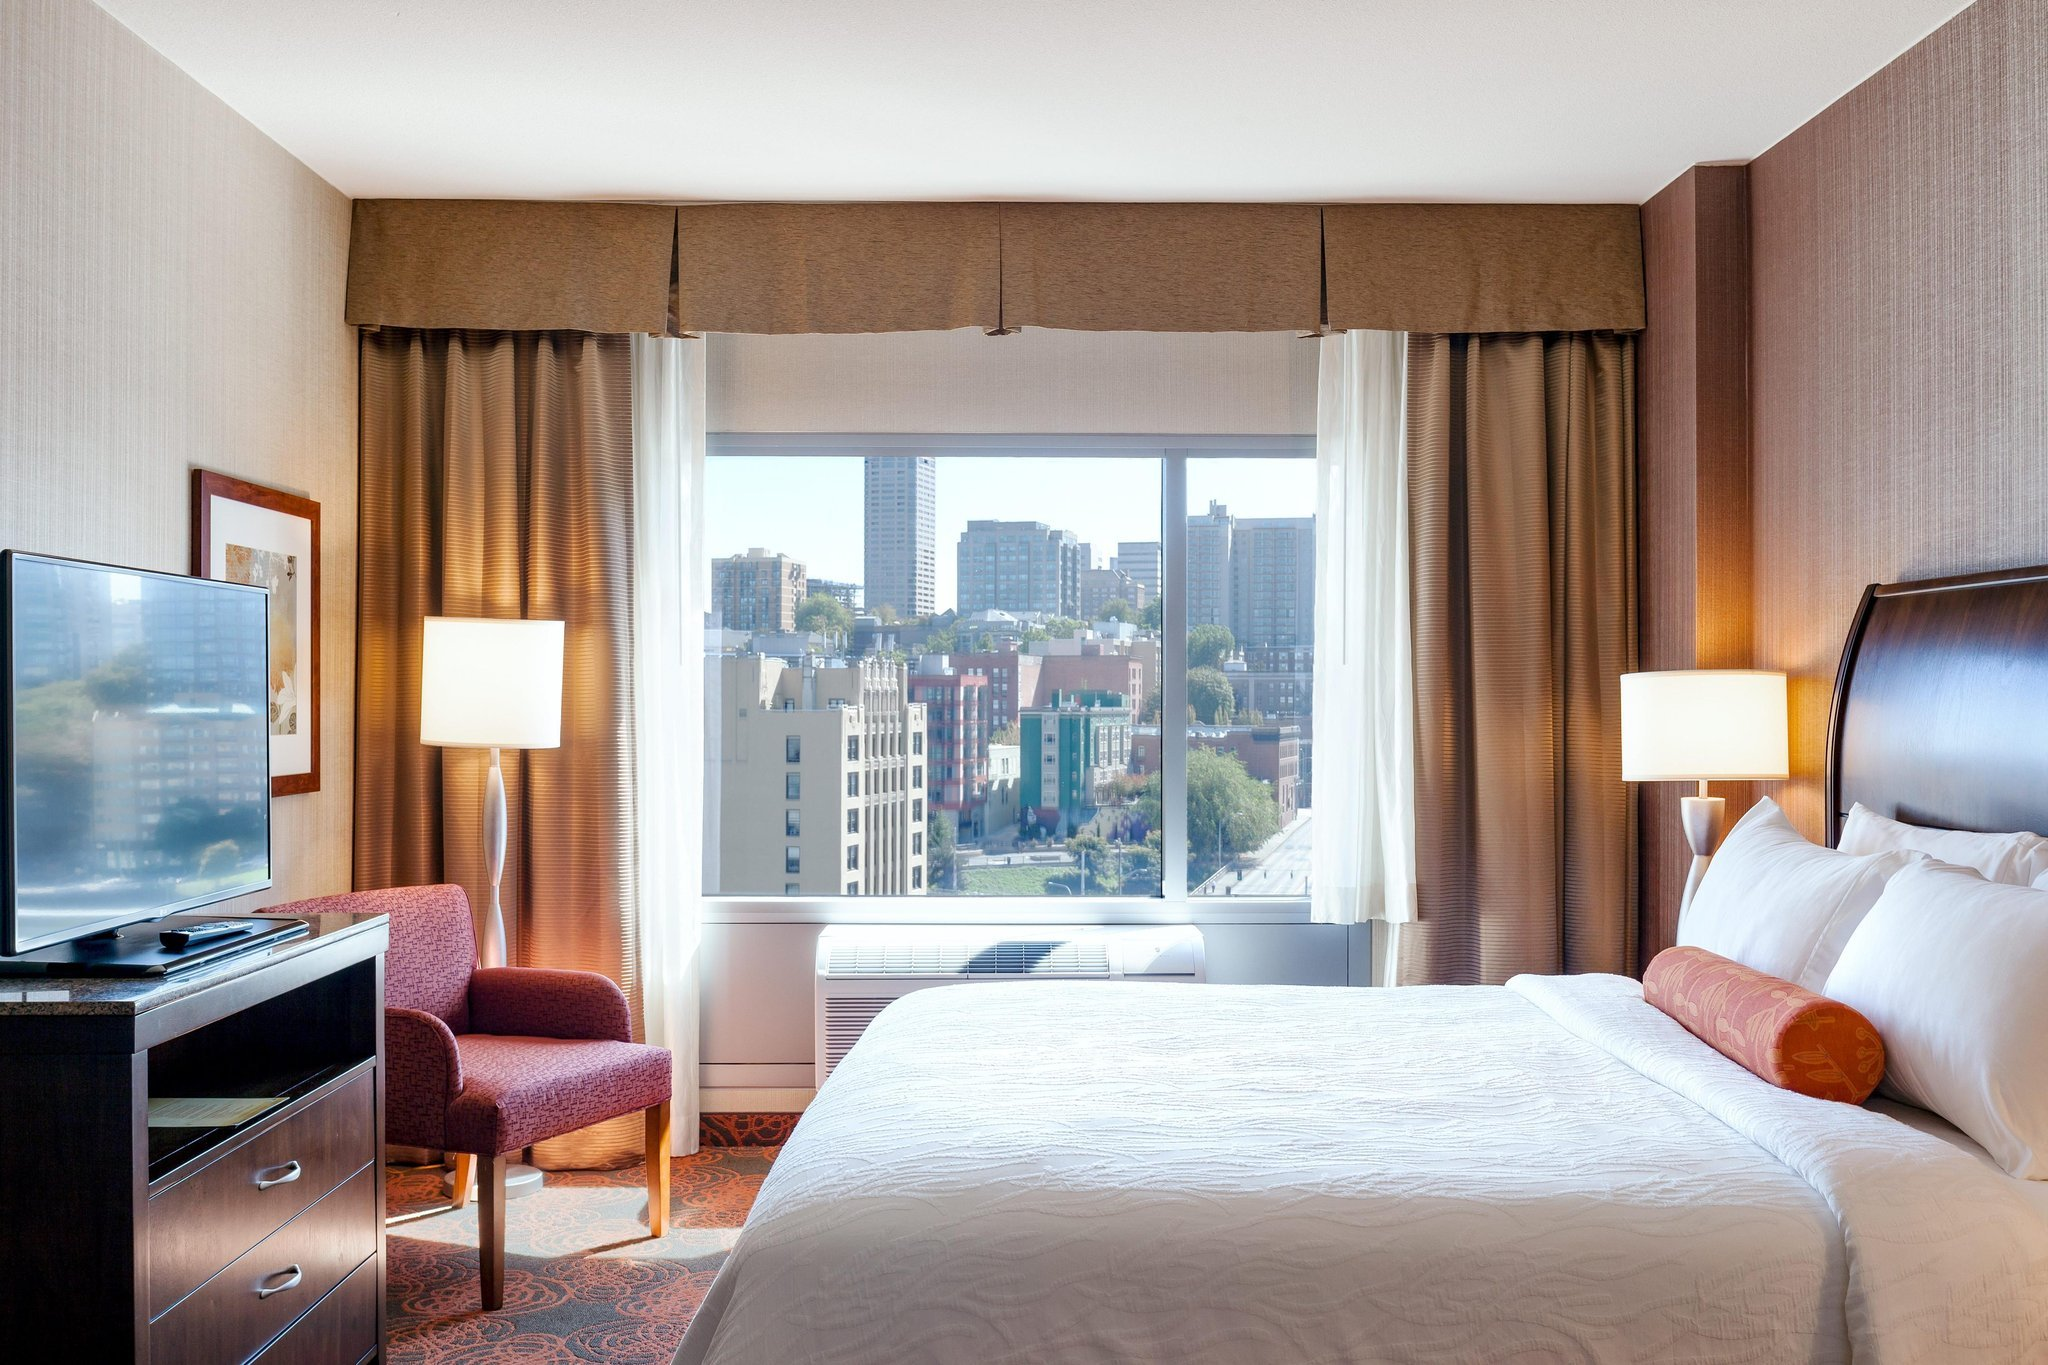 Seattle Hotel Suites 2 Bedrooms Hilton Garden Inn Seattle Downtown Updated 2017 Hotel Reviews